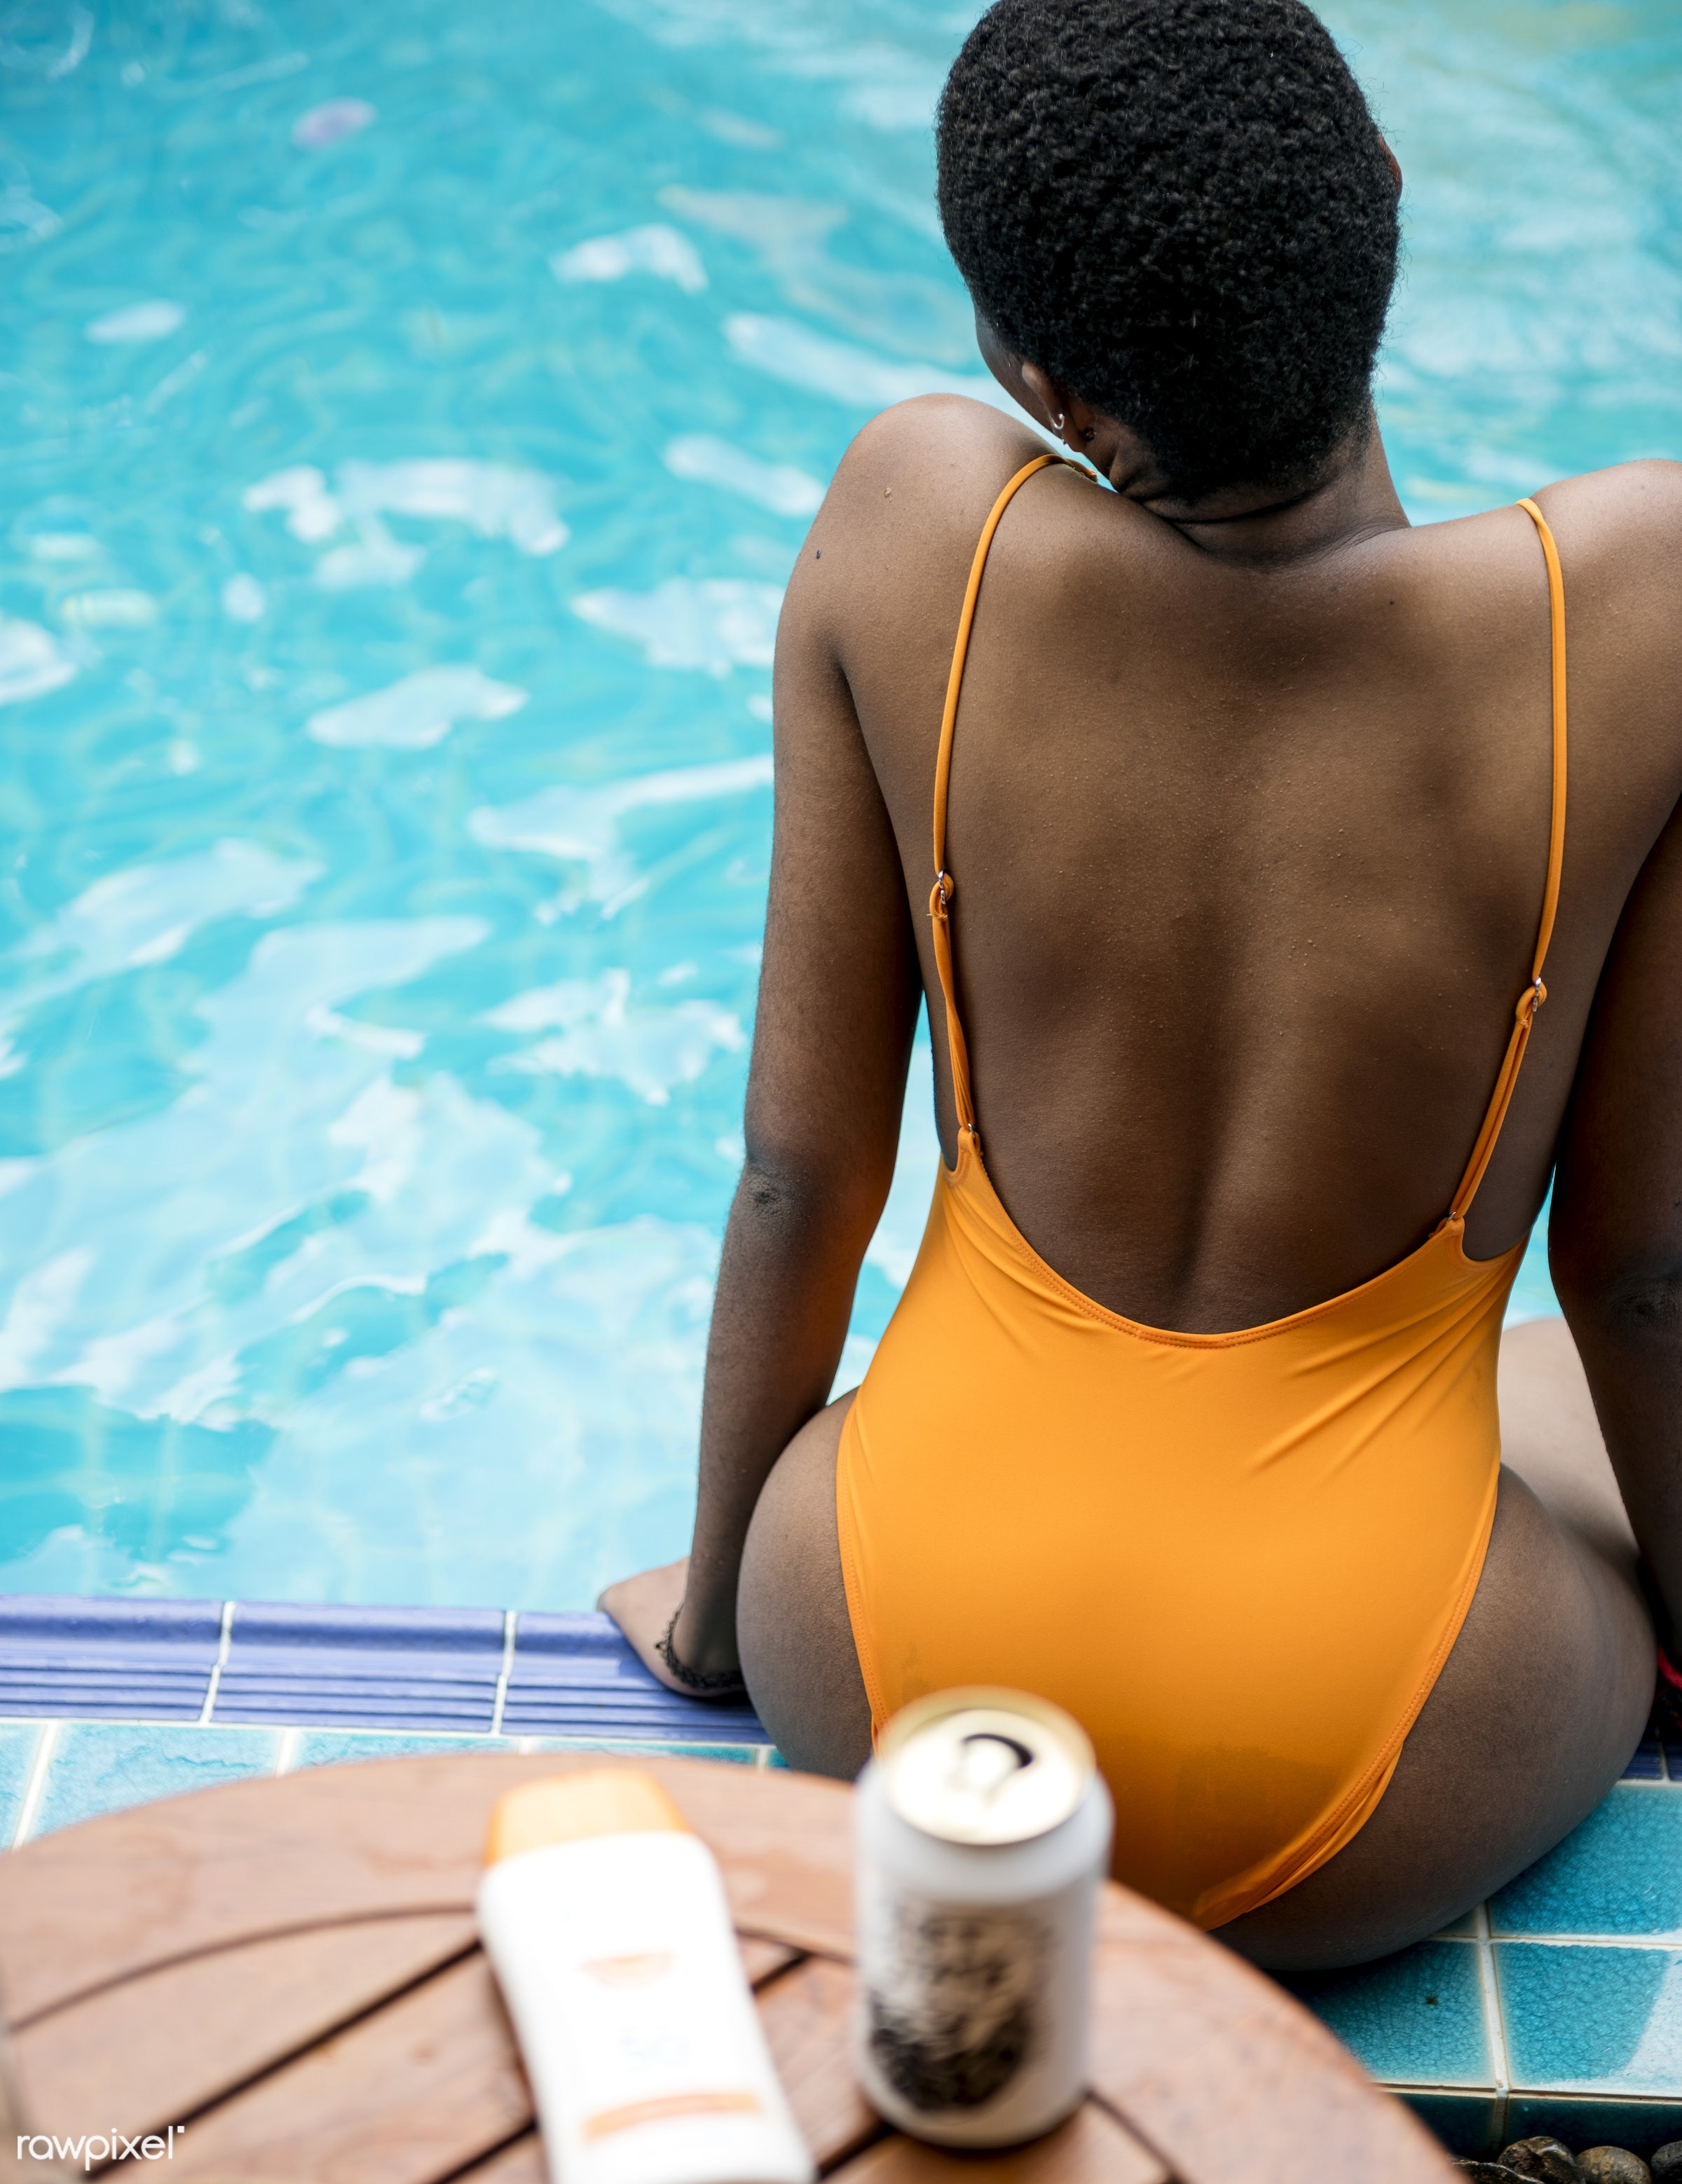 relax, recreation, pool, woman, cheerful, alone, closeup, rear view, enjoying, african descent, happiness, leisure, fun,...